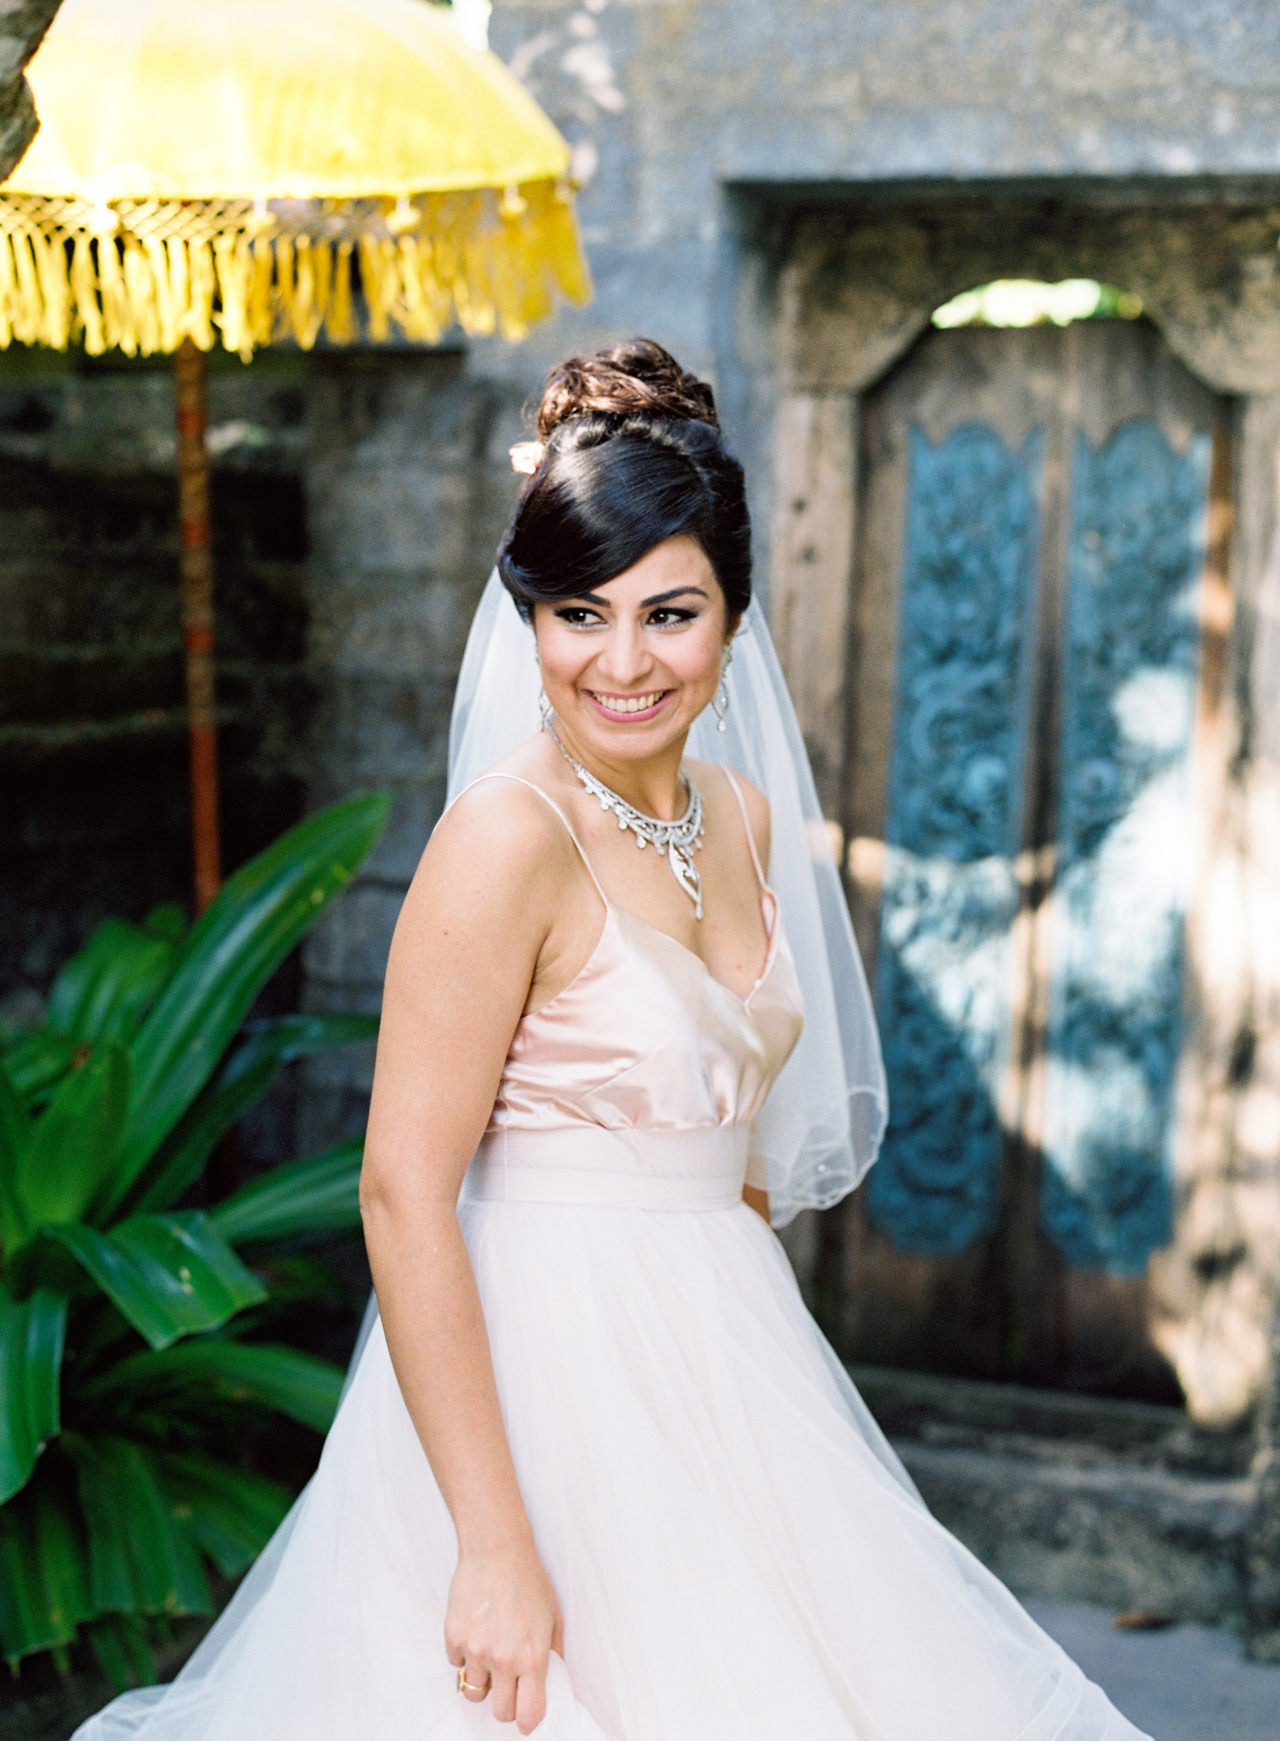 P&C: Getting Married in Bali 10